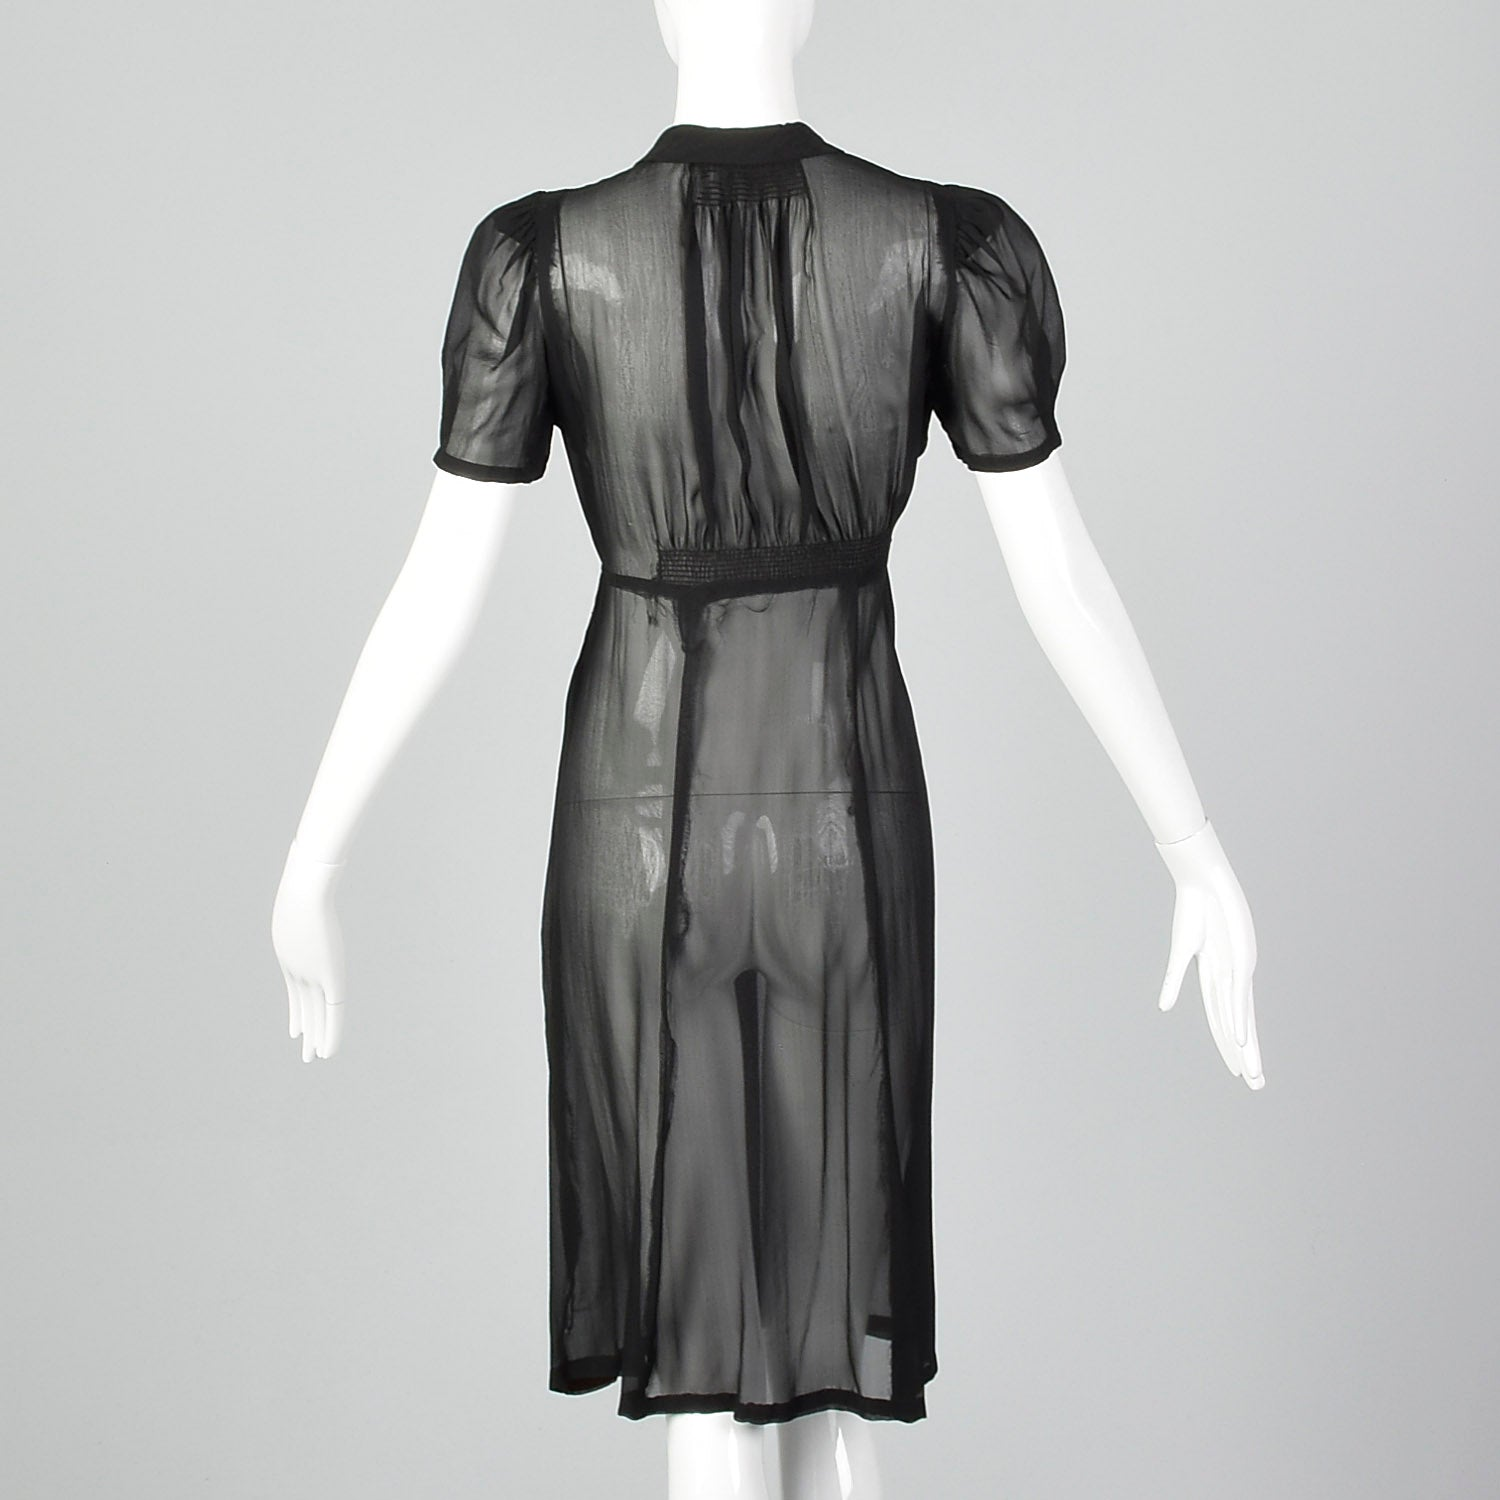 1930s Sheer Black Pleated Dress